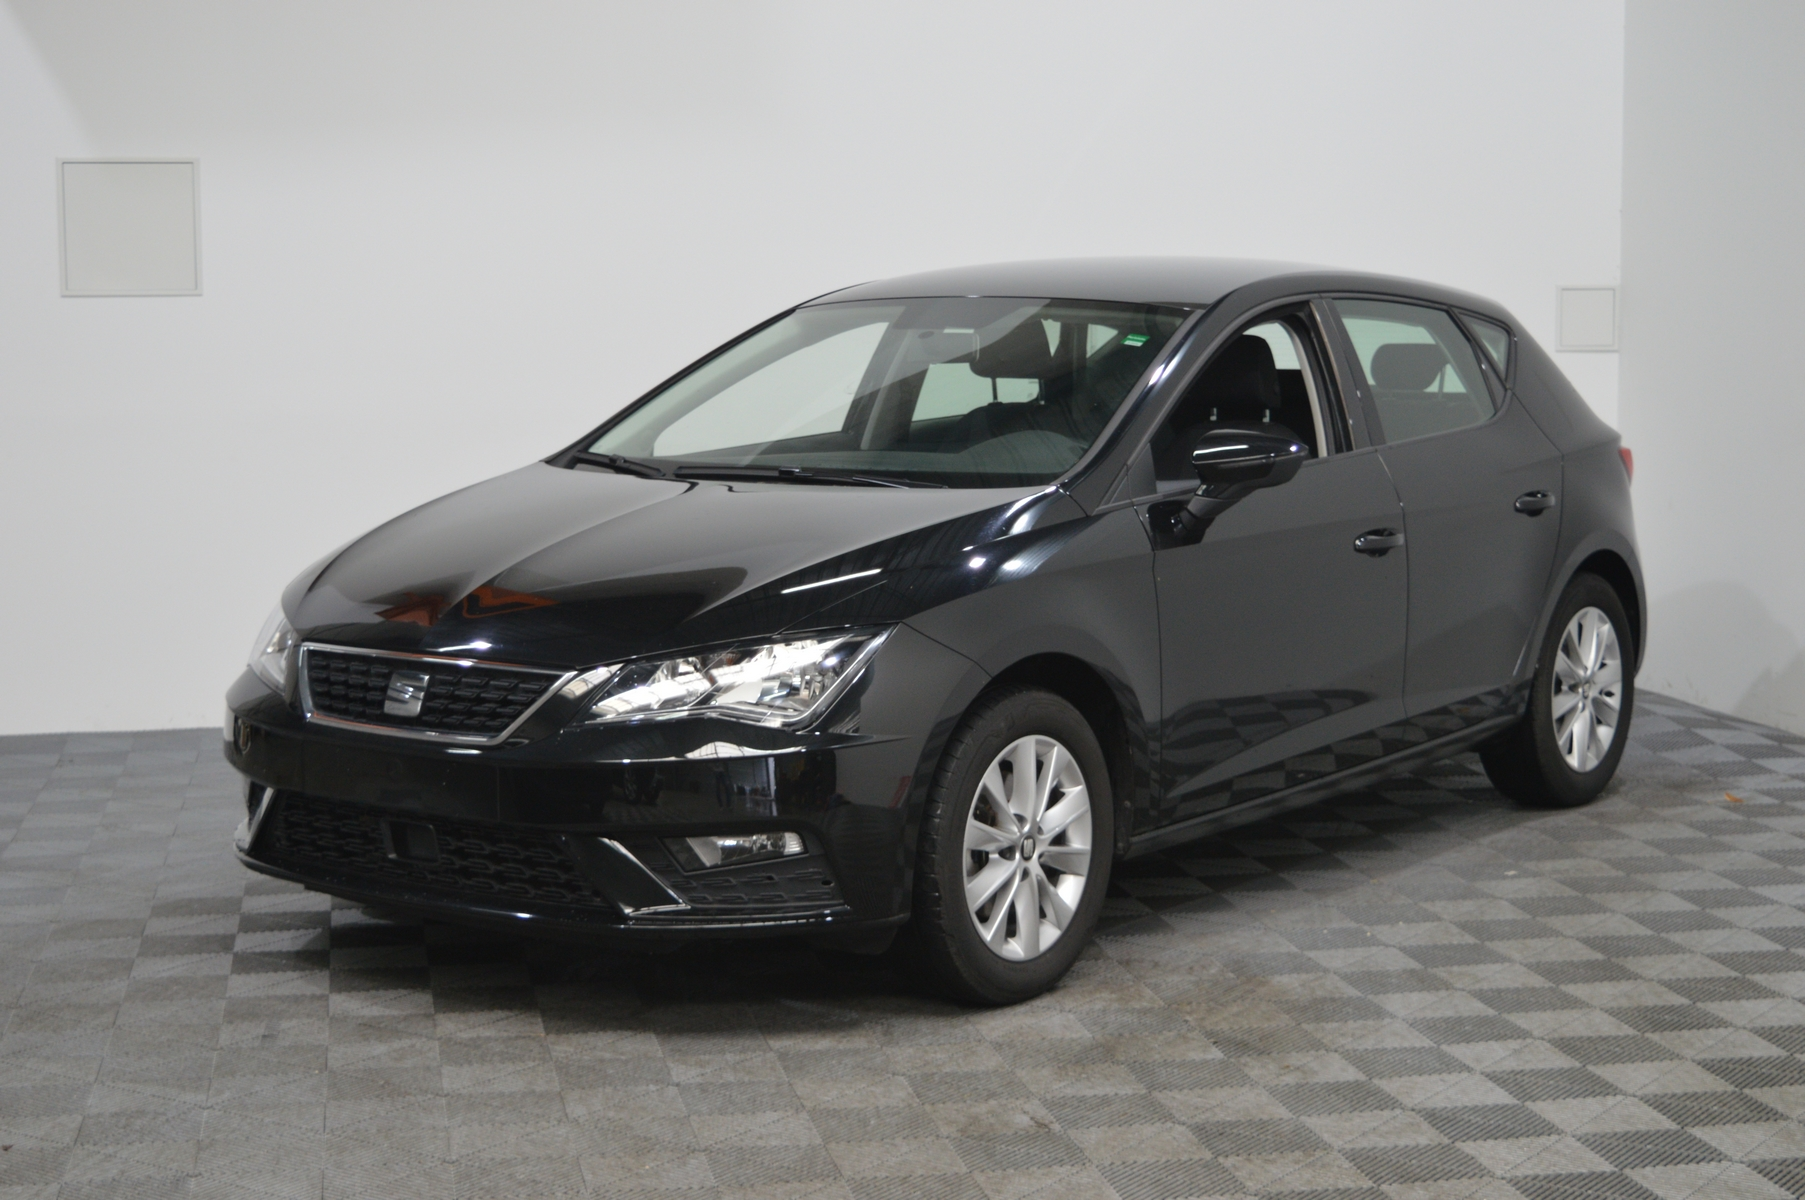 SEAT LEON 1.6 TDI 115 BVM5 Style - 5P d'occasion